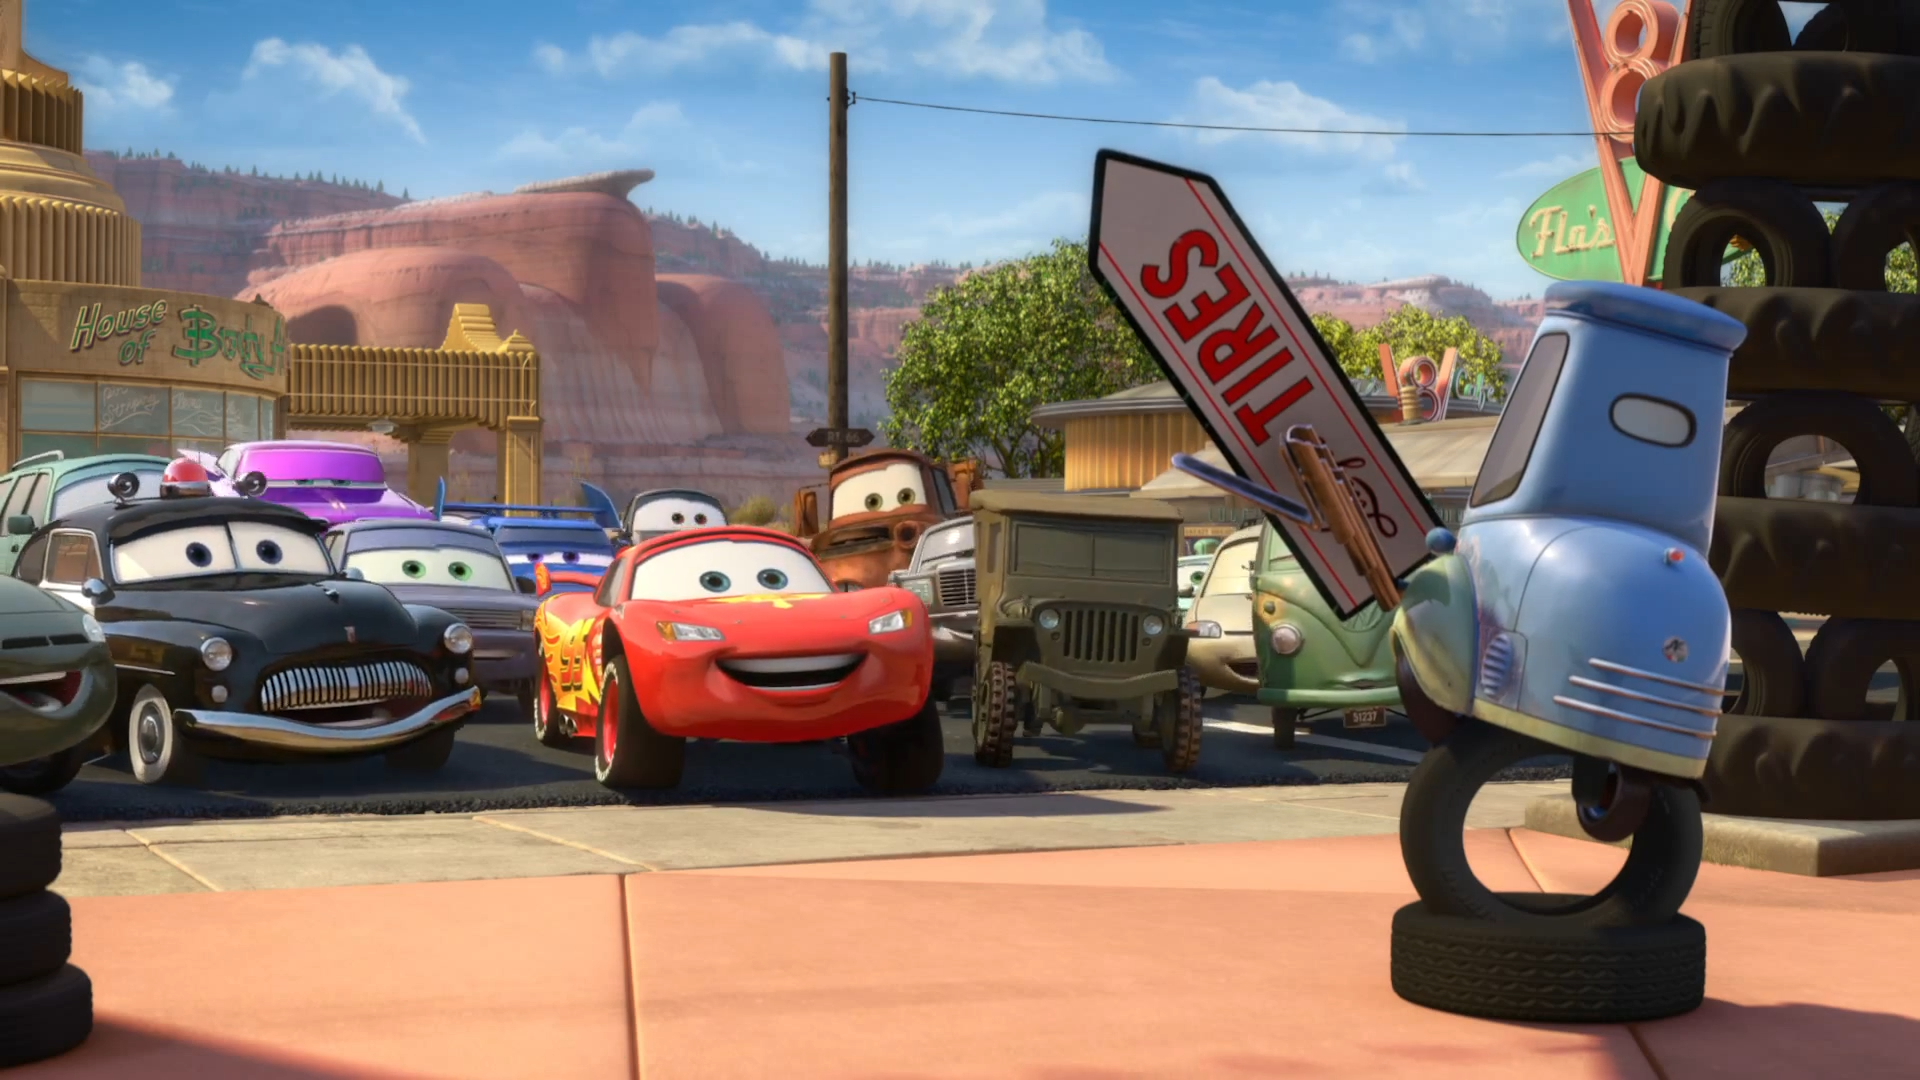 Image Spinning13 Png Pixar Wiki Fandom Powered By Wikia